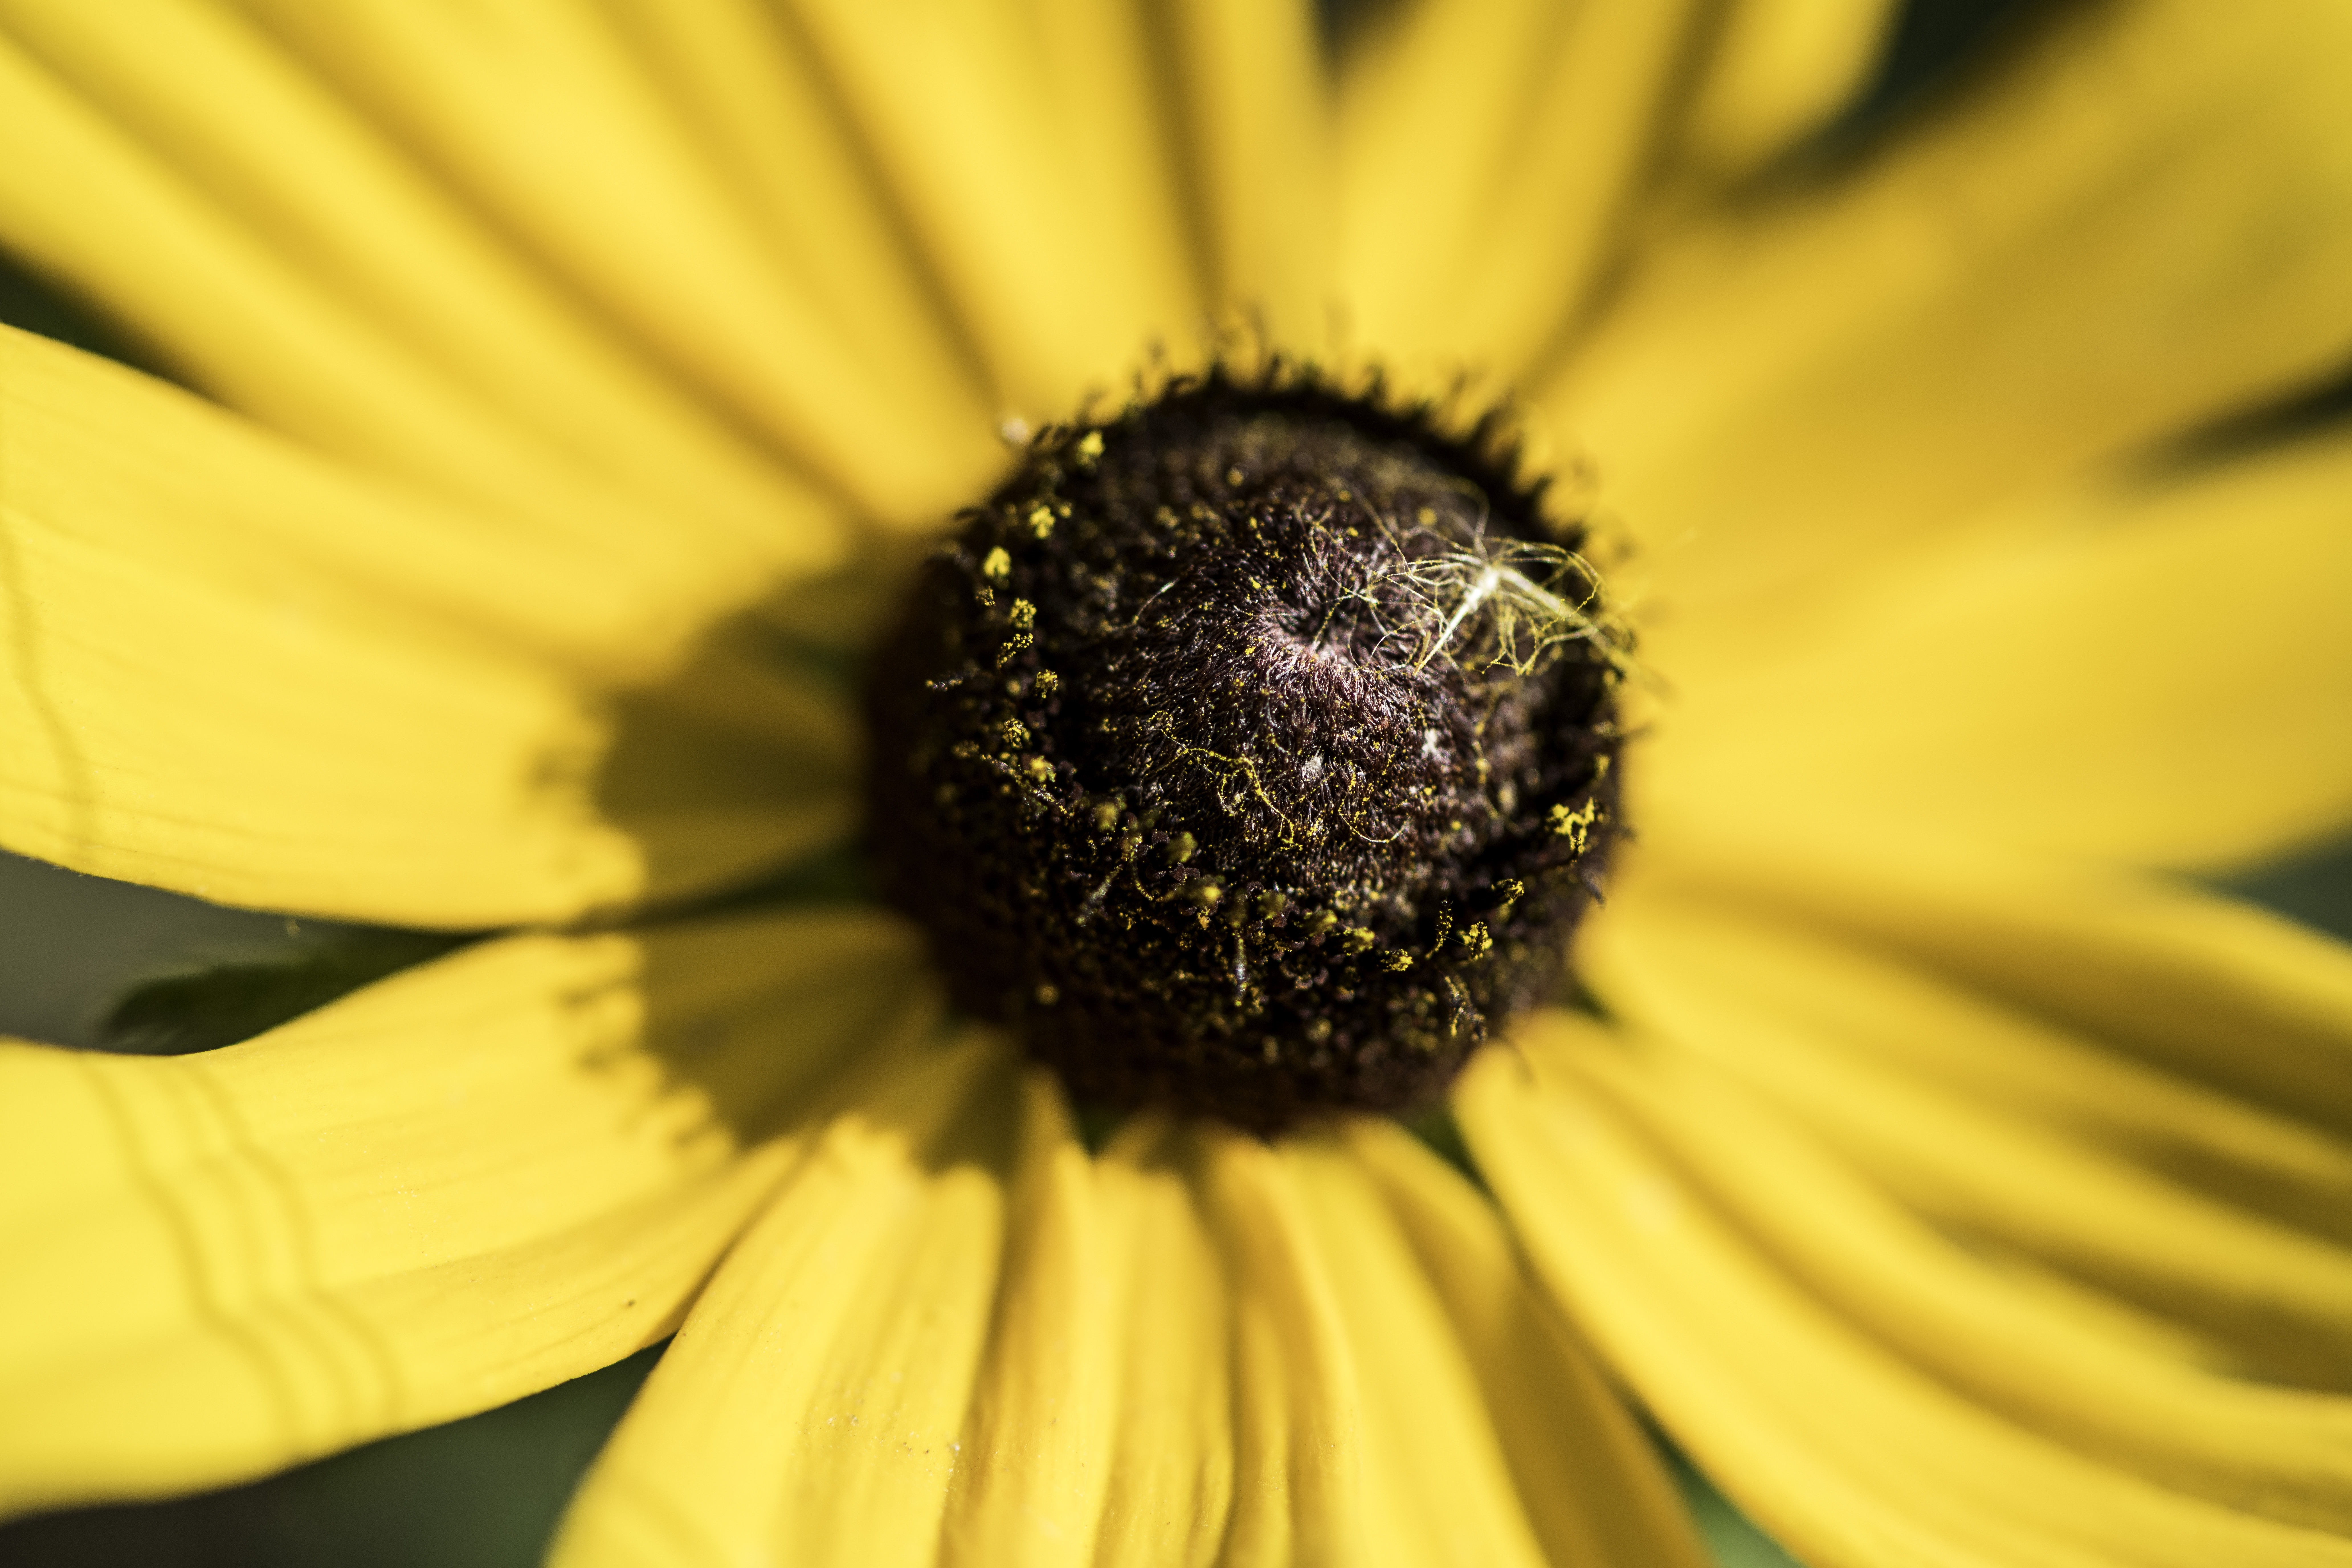 Macro Of Yellow Flower With Detailed Core Image Free Stock Photo